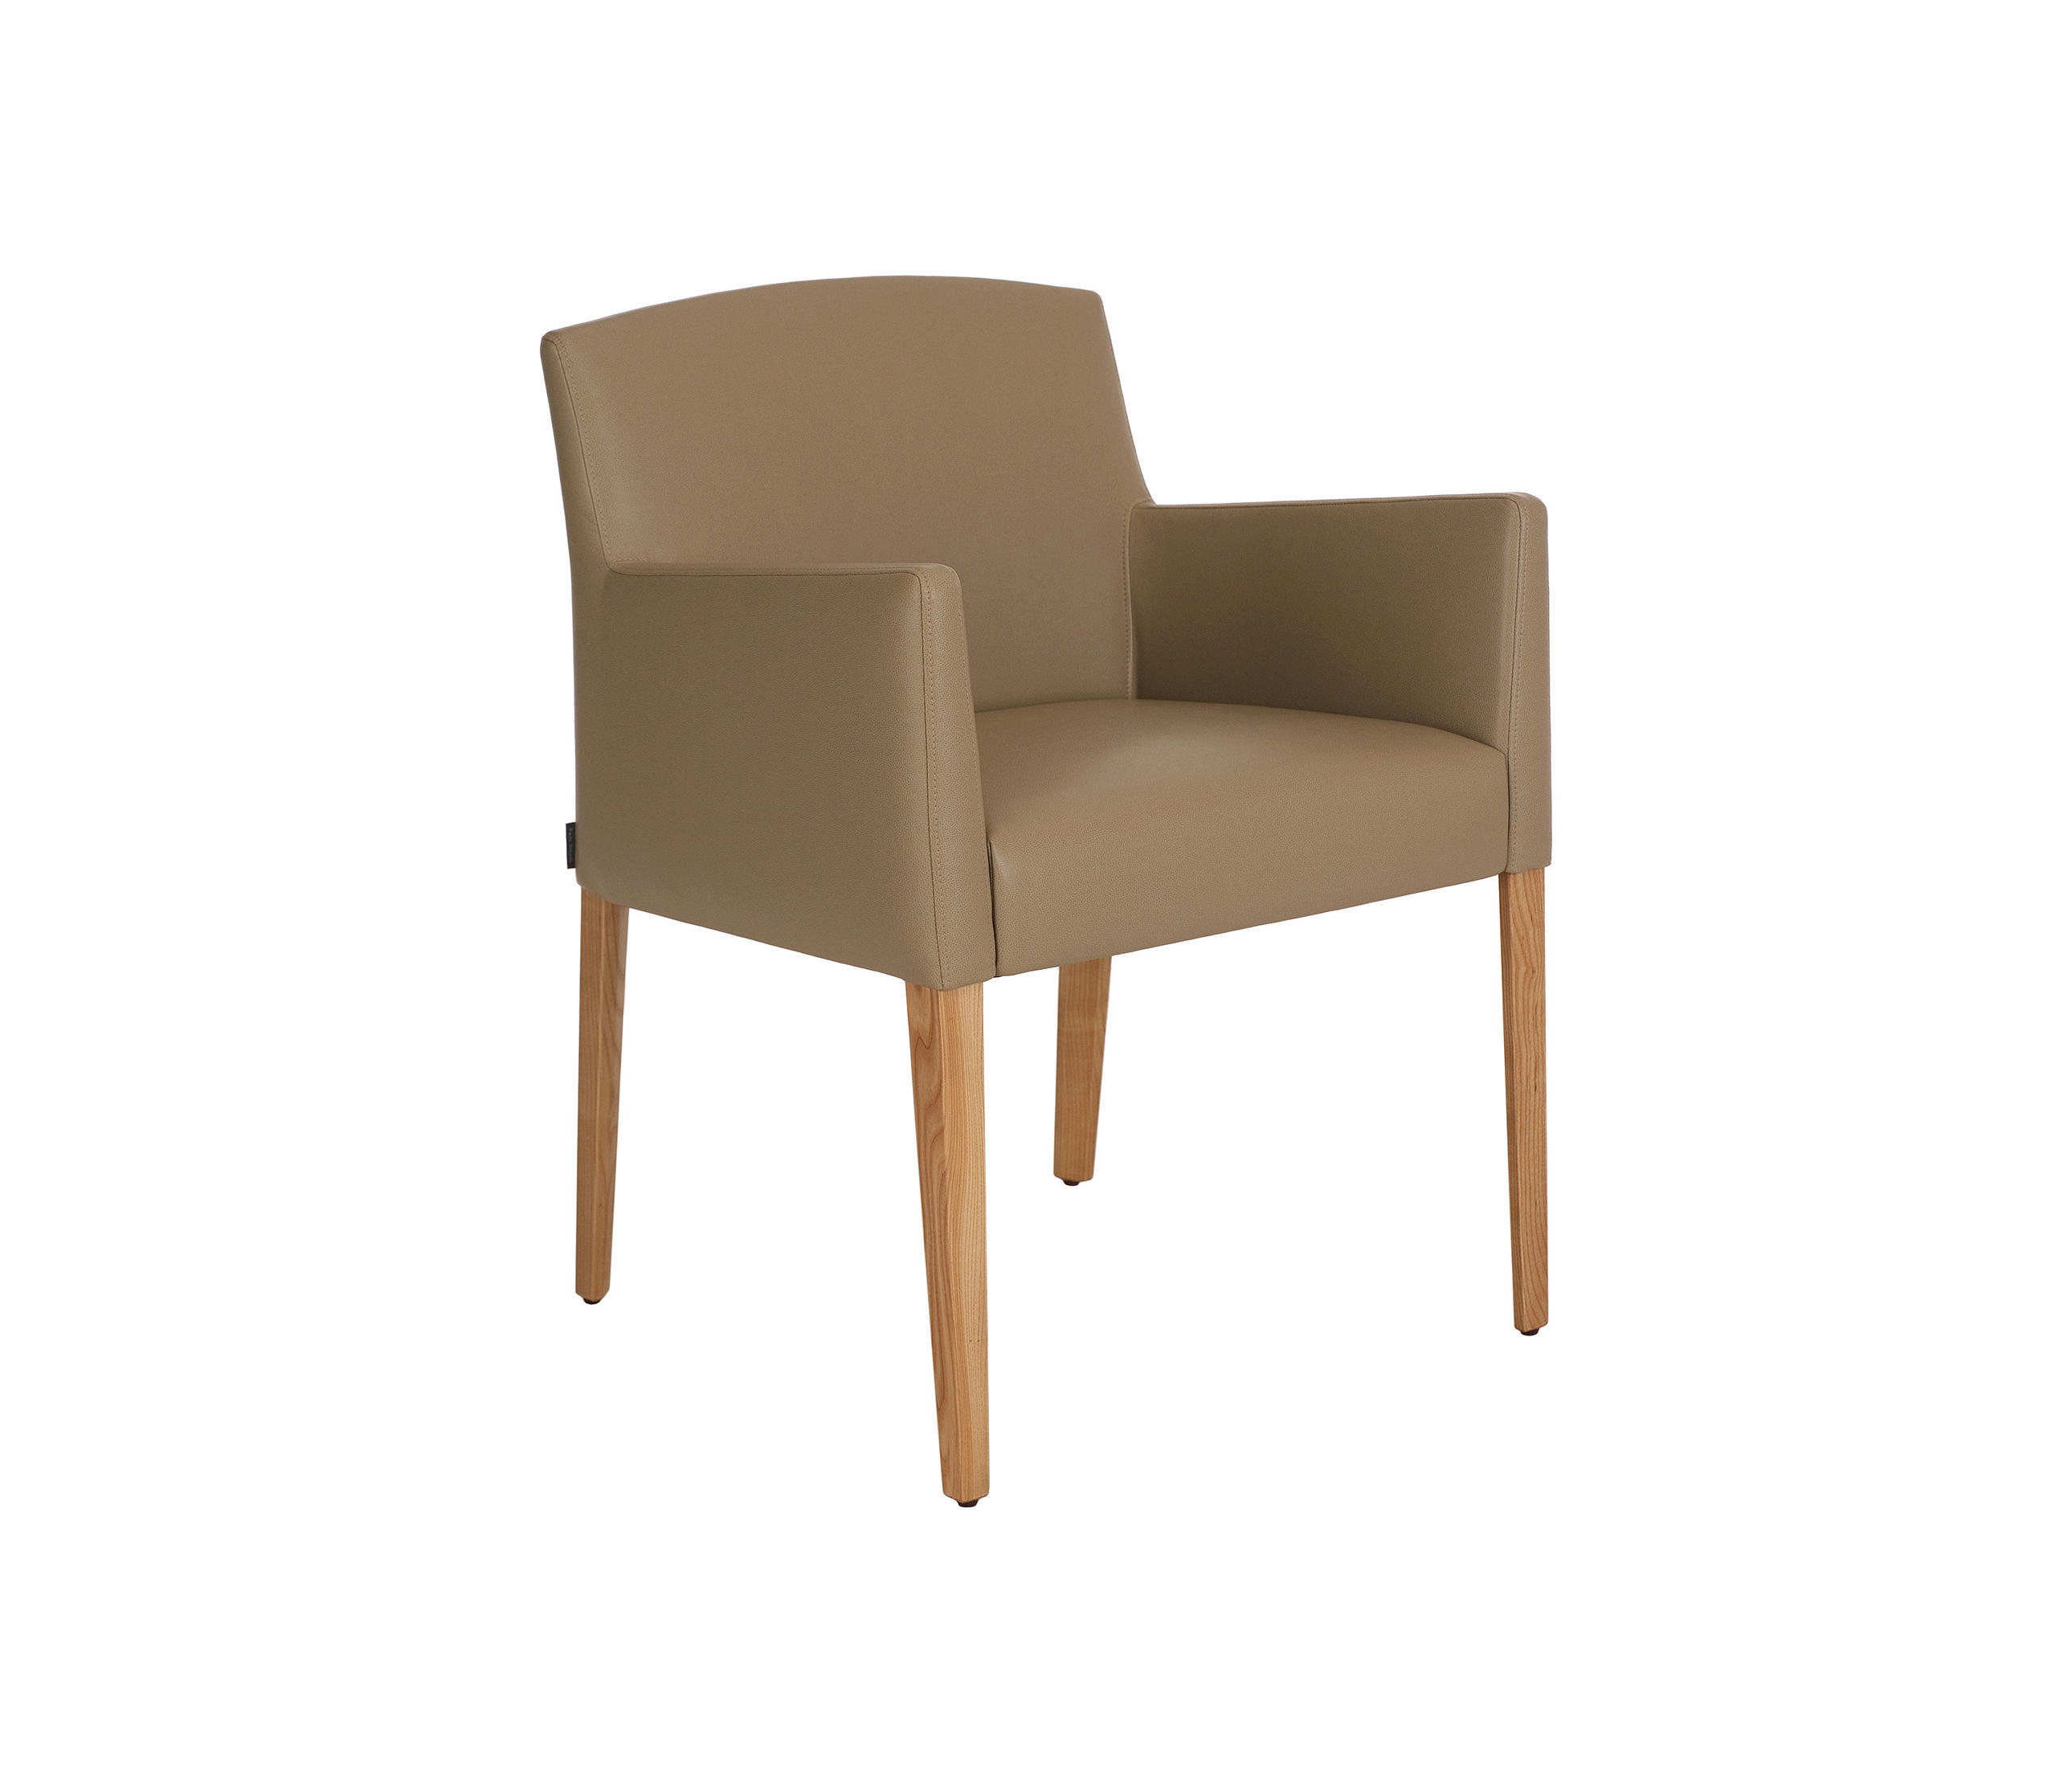 Etonnant ... Thomas Chair By PAULO ANTUNES | Chairs ...